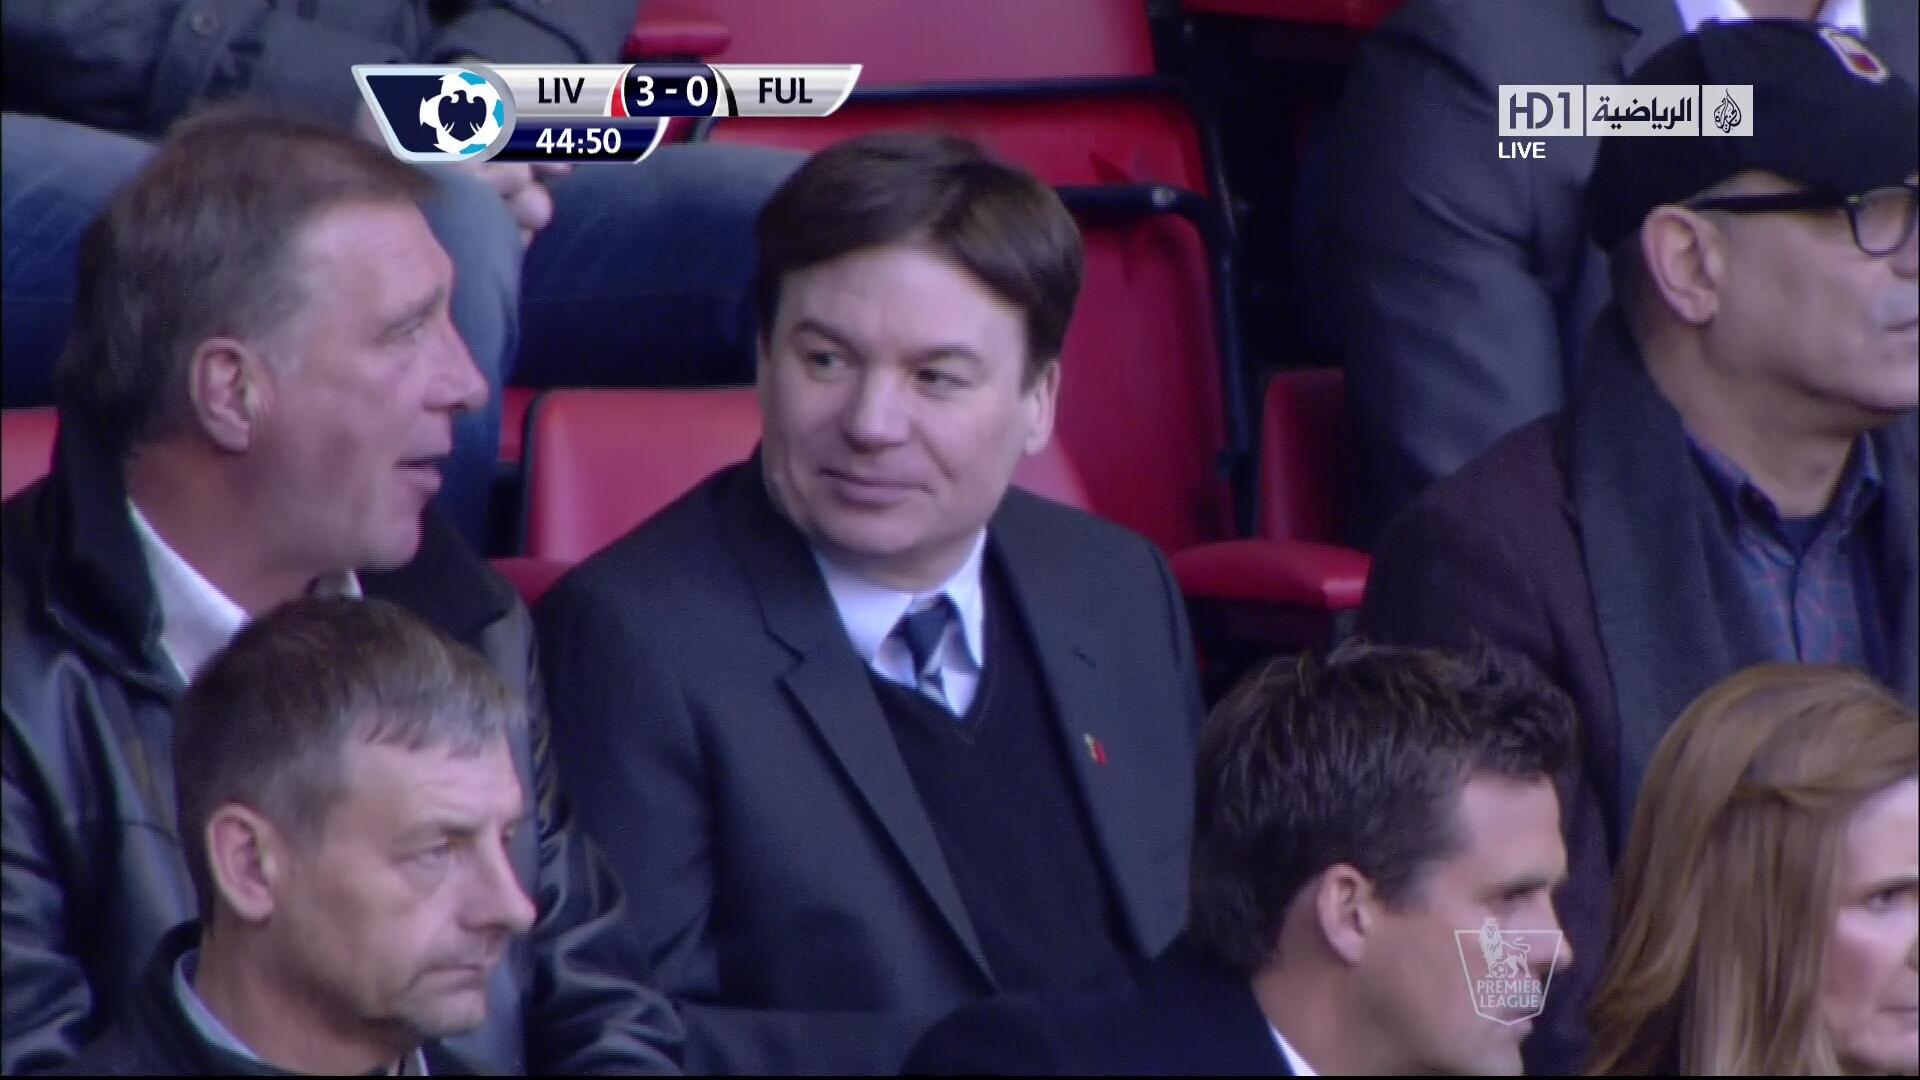 Groovy Baby! Mike Myers watches LIverpool v Fulham